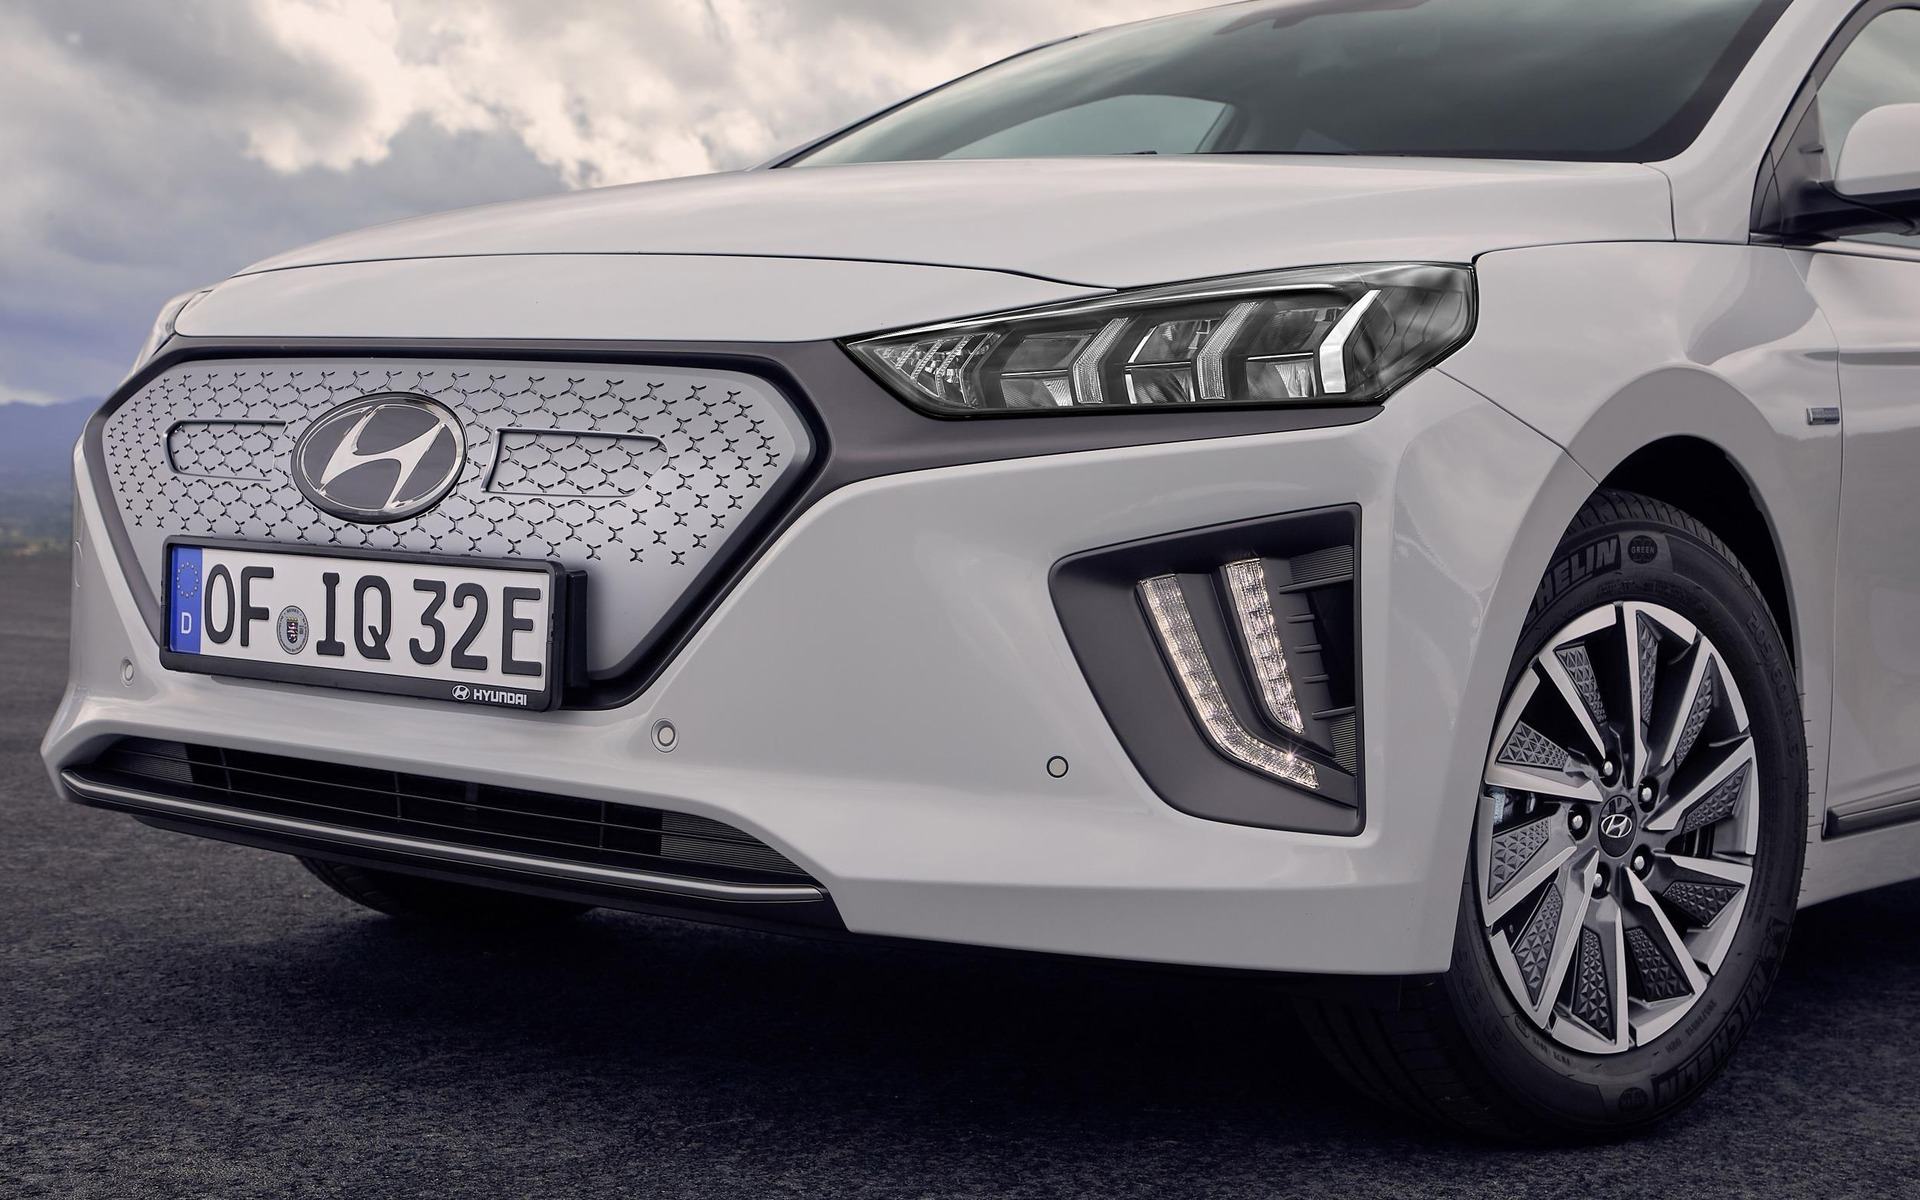 2020 Hyundai IONIQ Electric to Offer More Range and Connectivity